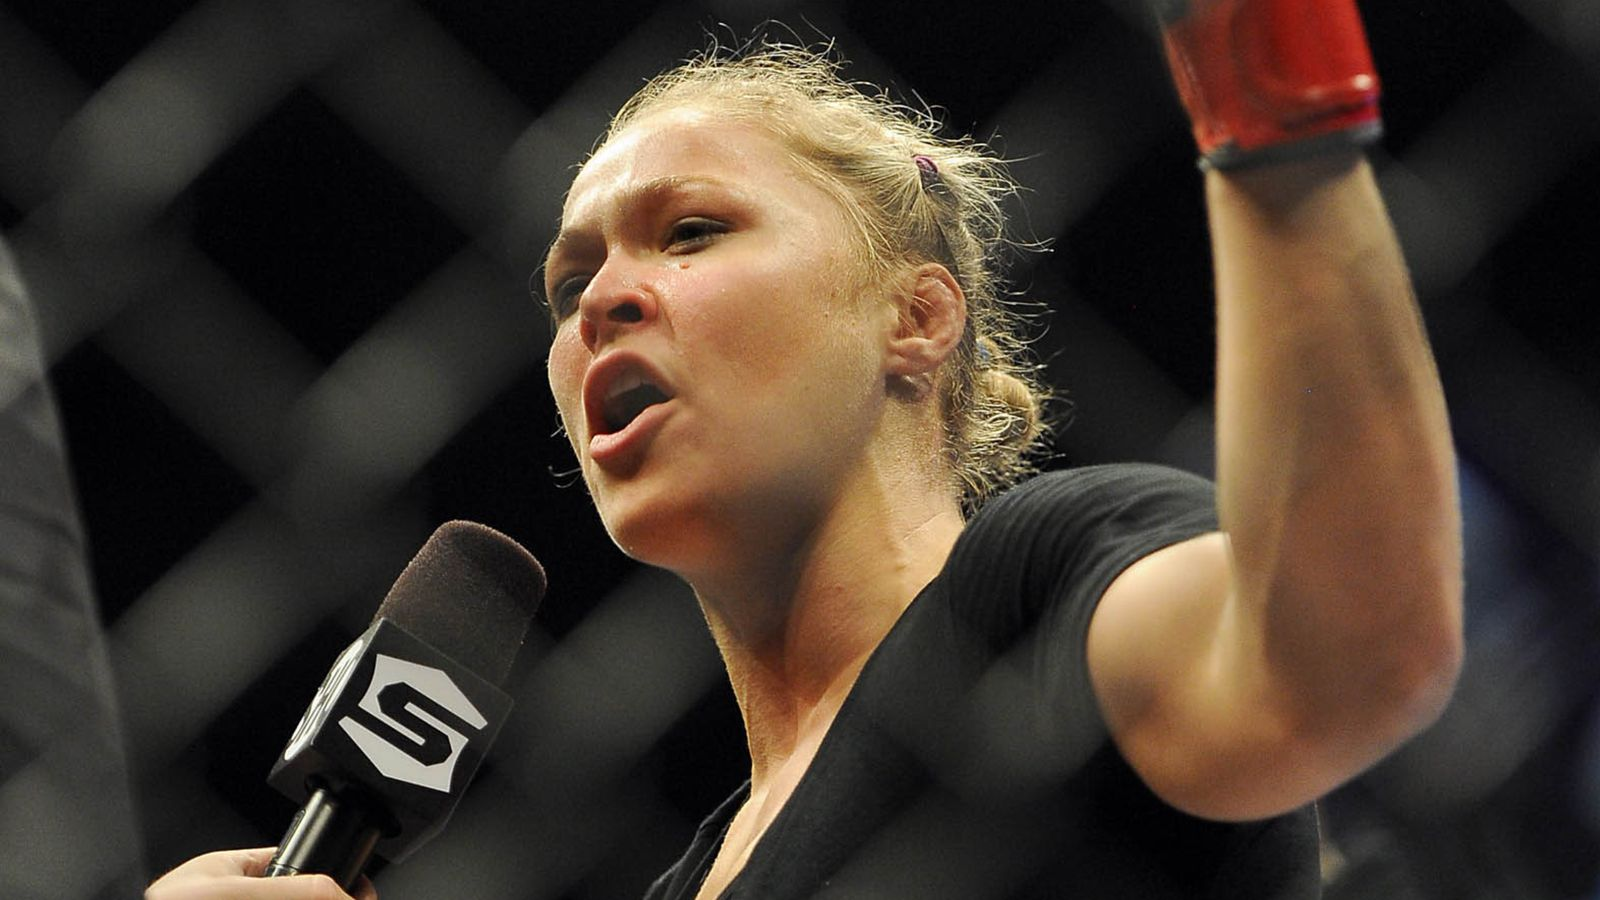 Ufc Quick Quote Ronda Rousey Wont Pose Nude For Playboy -4893